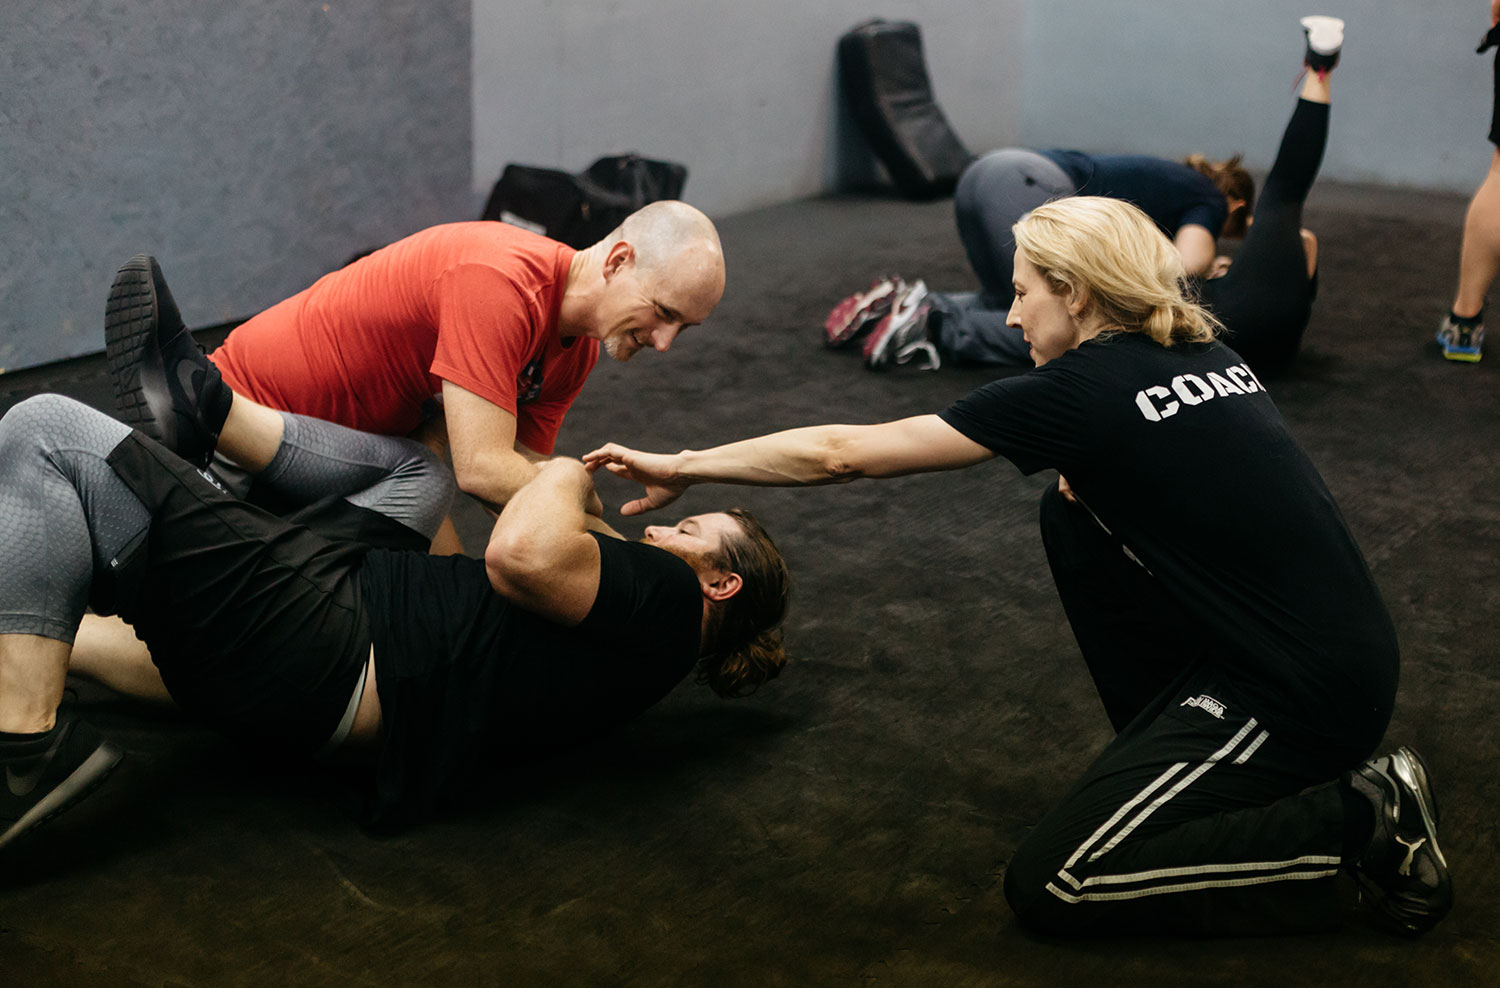 Becky Madison Kier, instructor at Krav Maga Dallas // photos by Emilee Prado